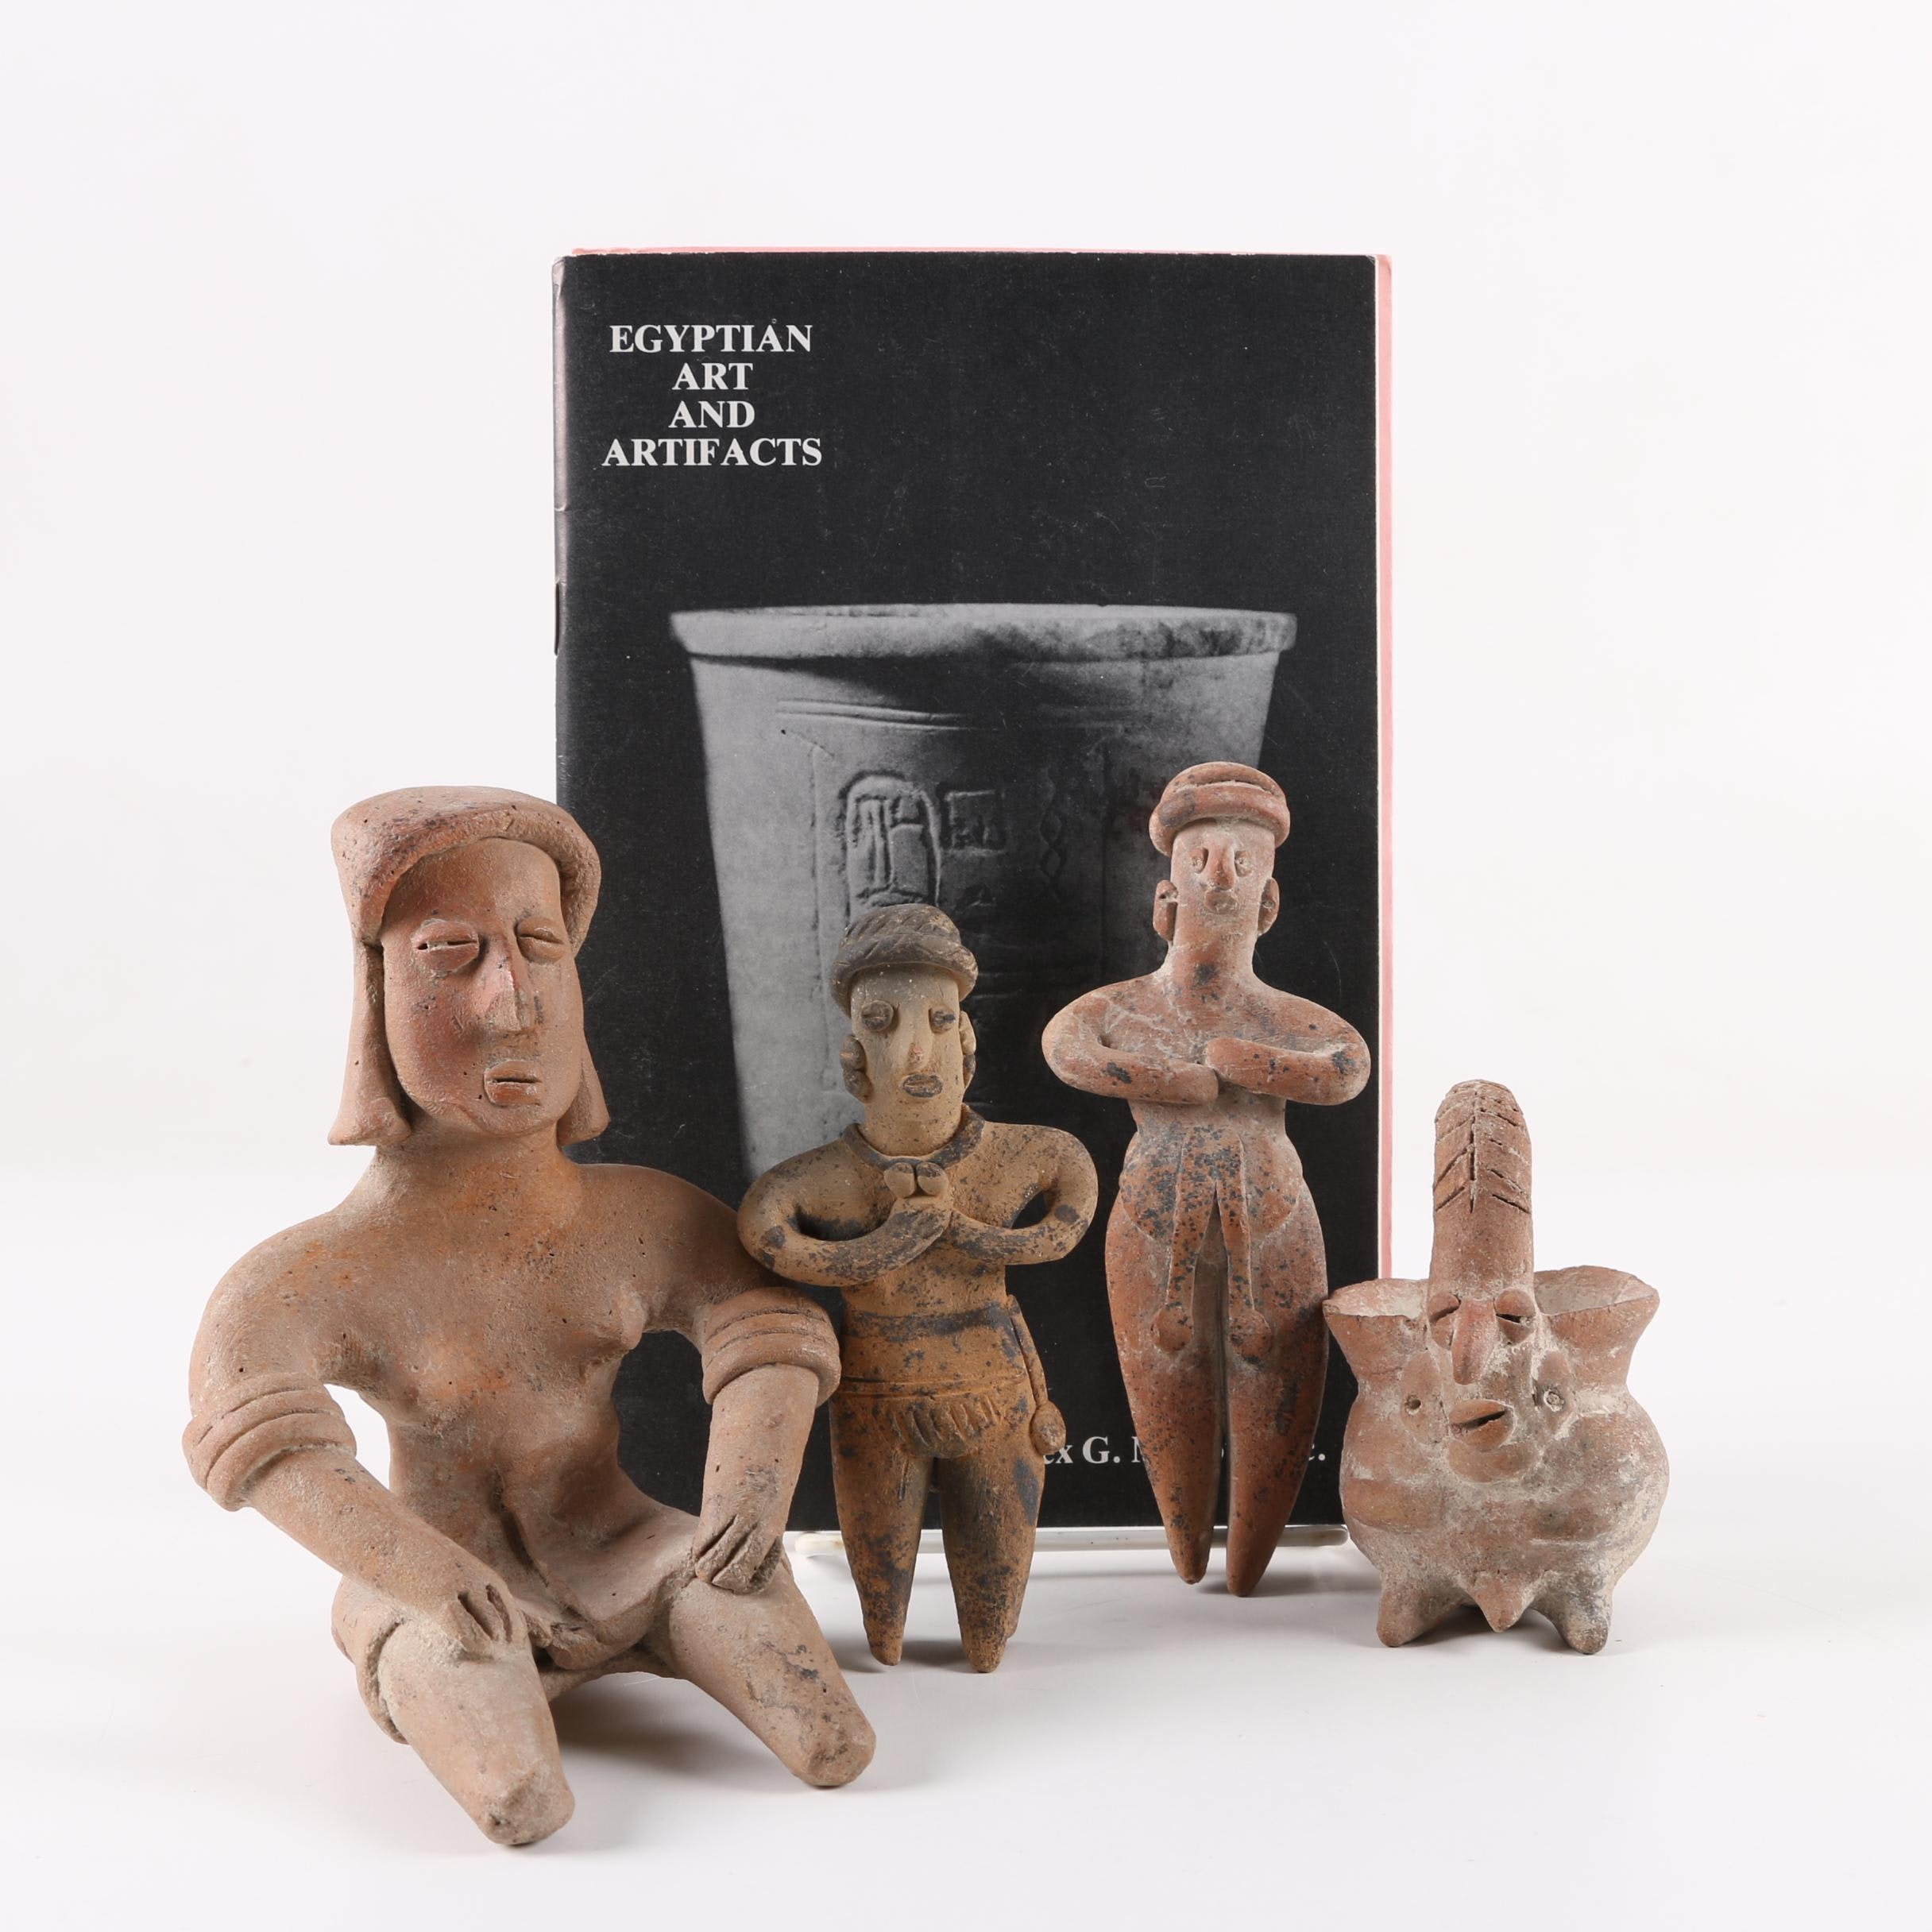 Mesoamerican Style Terracotta Figurines with Booklet